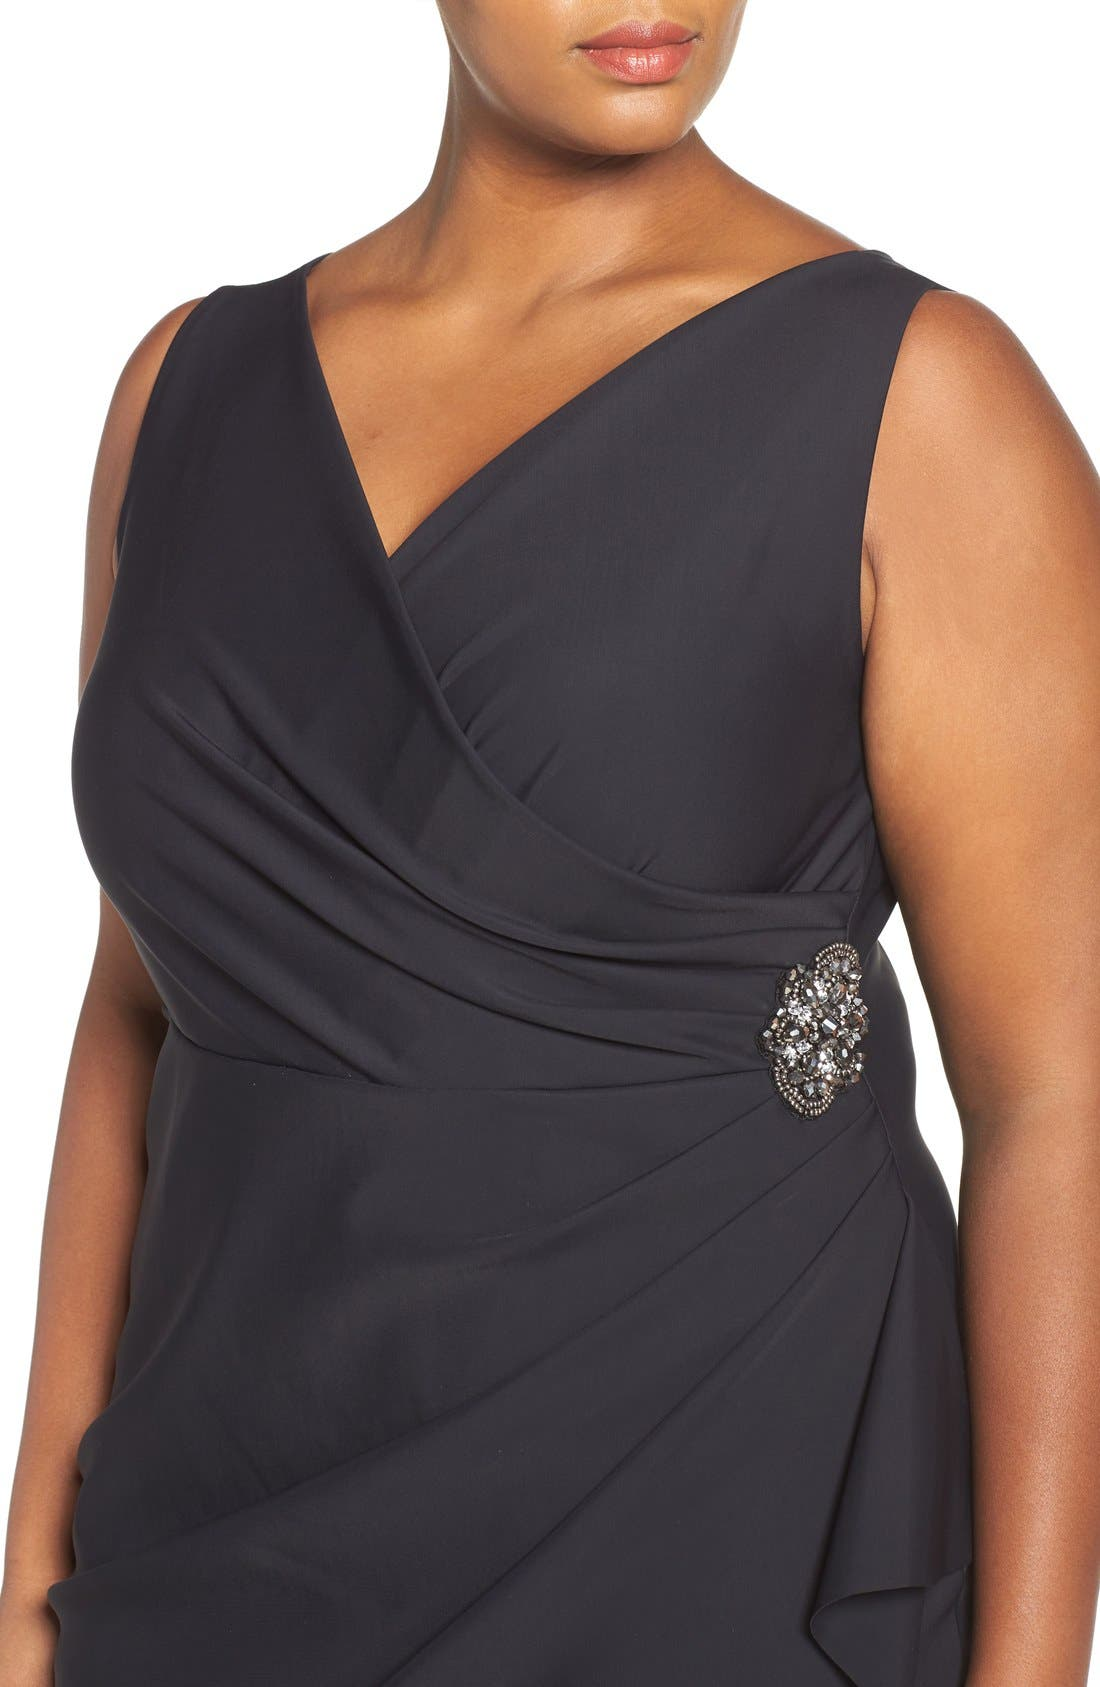 Embellished Surplice Sheath Dress,                             Alternate thumbnail 4, color,                             001